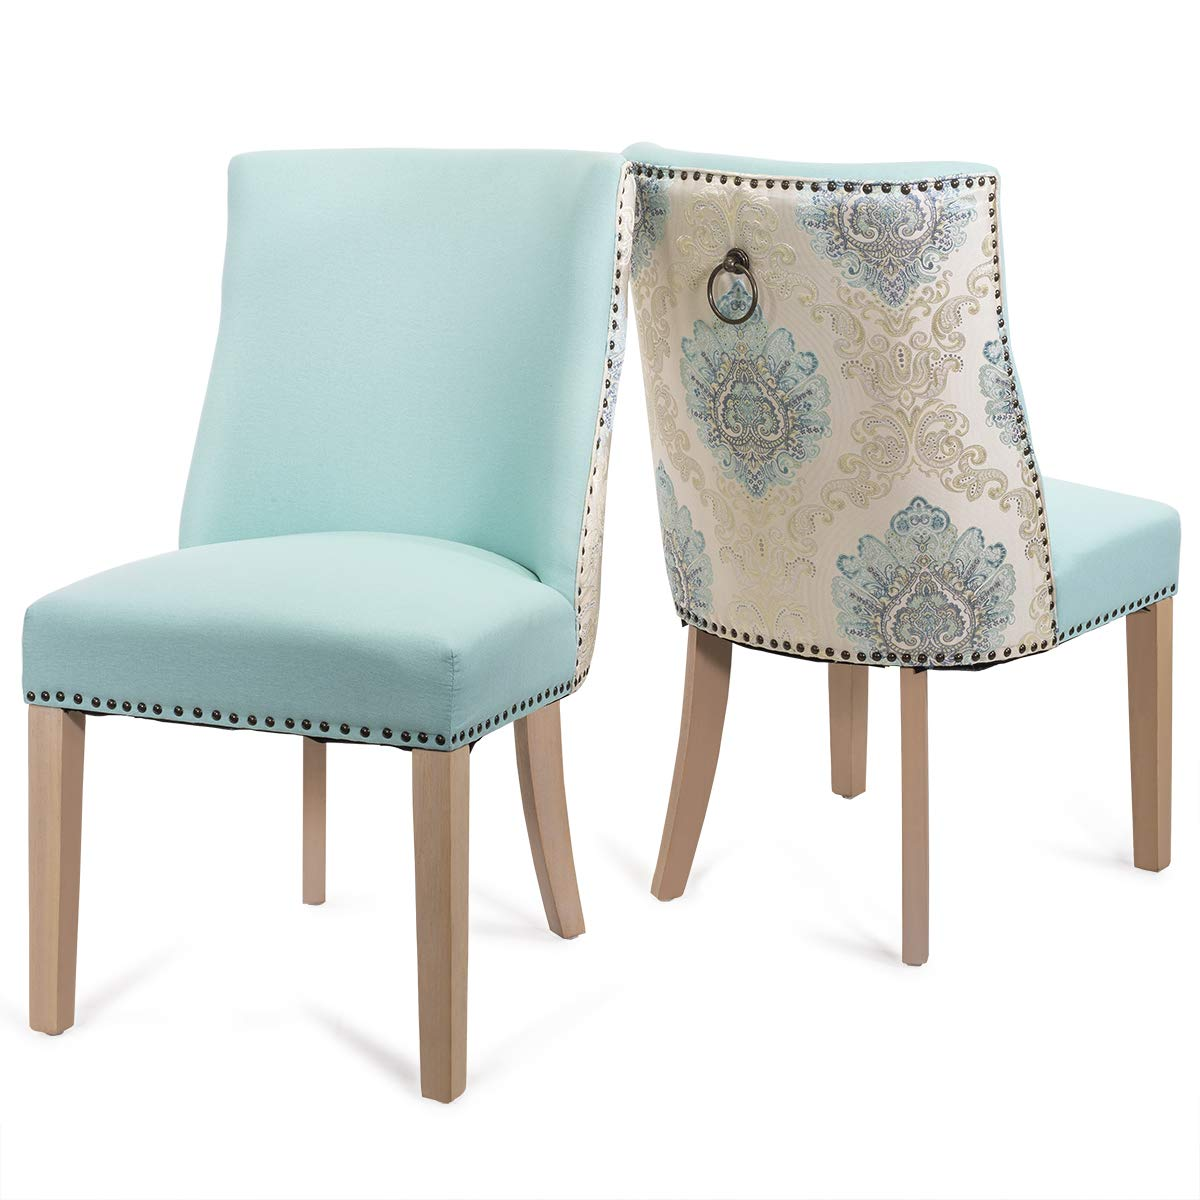 Barton Premium Set of 2 Parson Curved High-Back Dining Chair Armless Nailhead Trim Cushion Seat Back Ring Pull Aqua Blue w Pull Ring